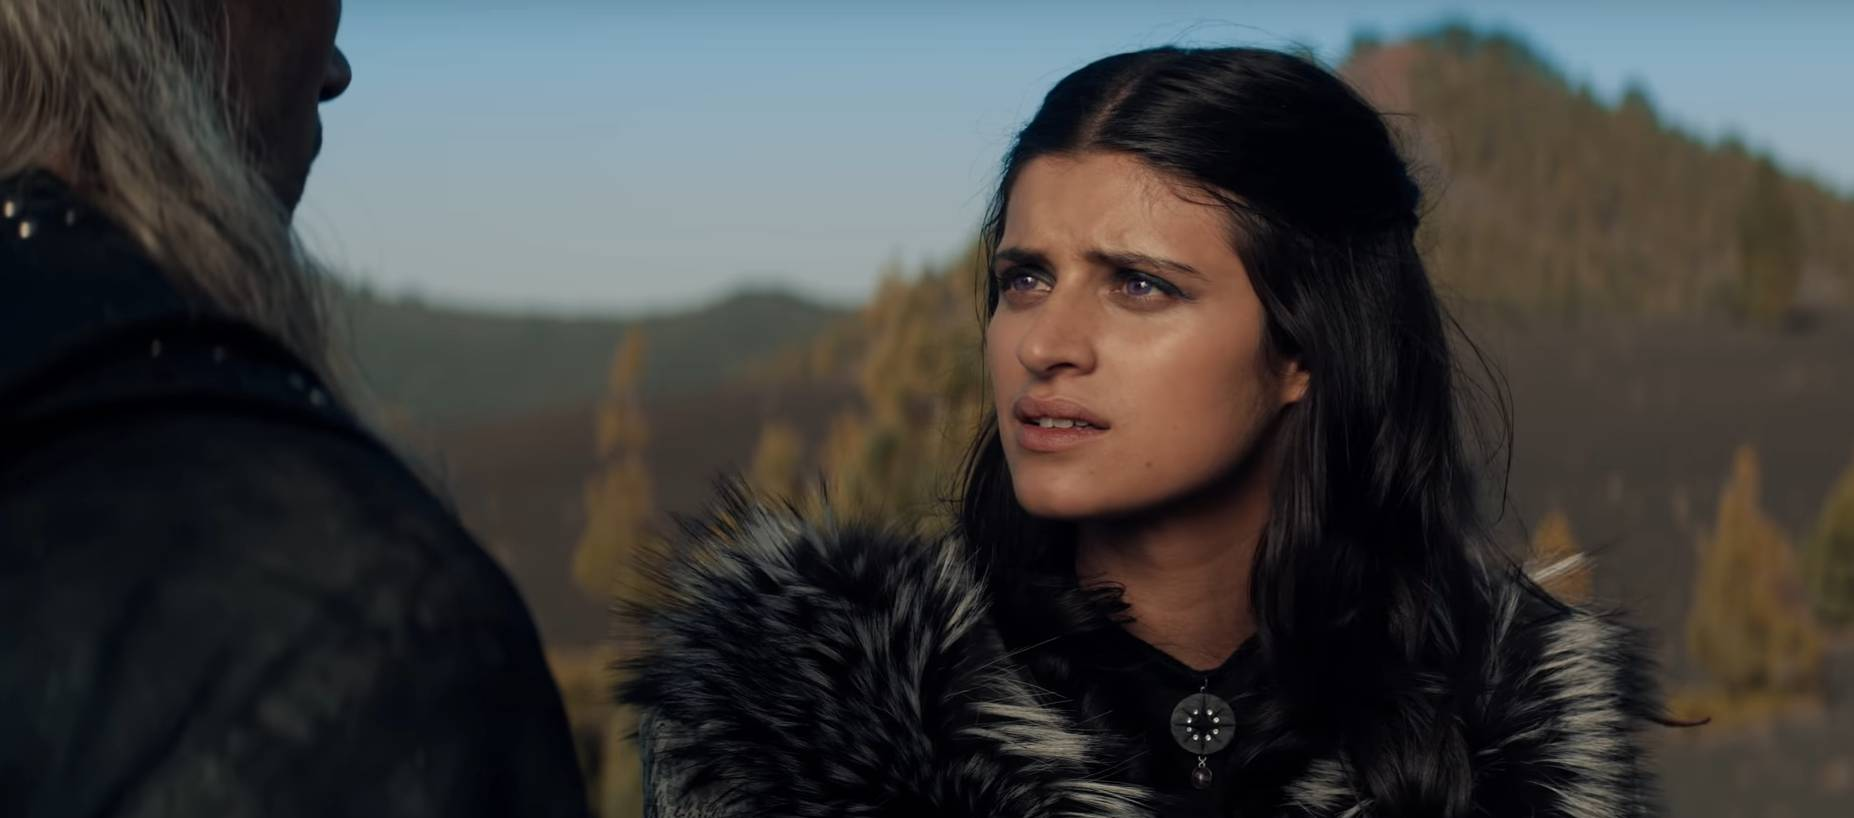 Showrunner Says The Witcher Netflix Series Will Place More Focus On Yennefer And Ciri